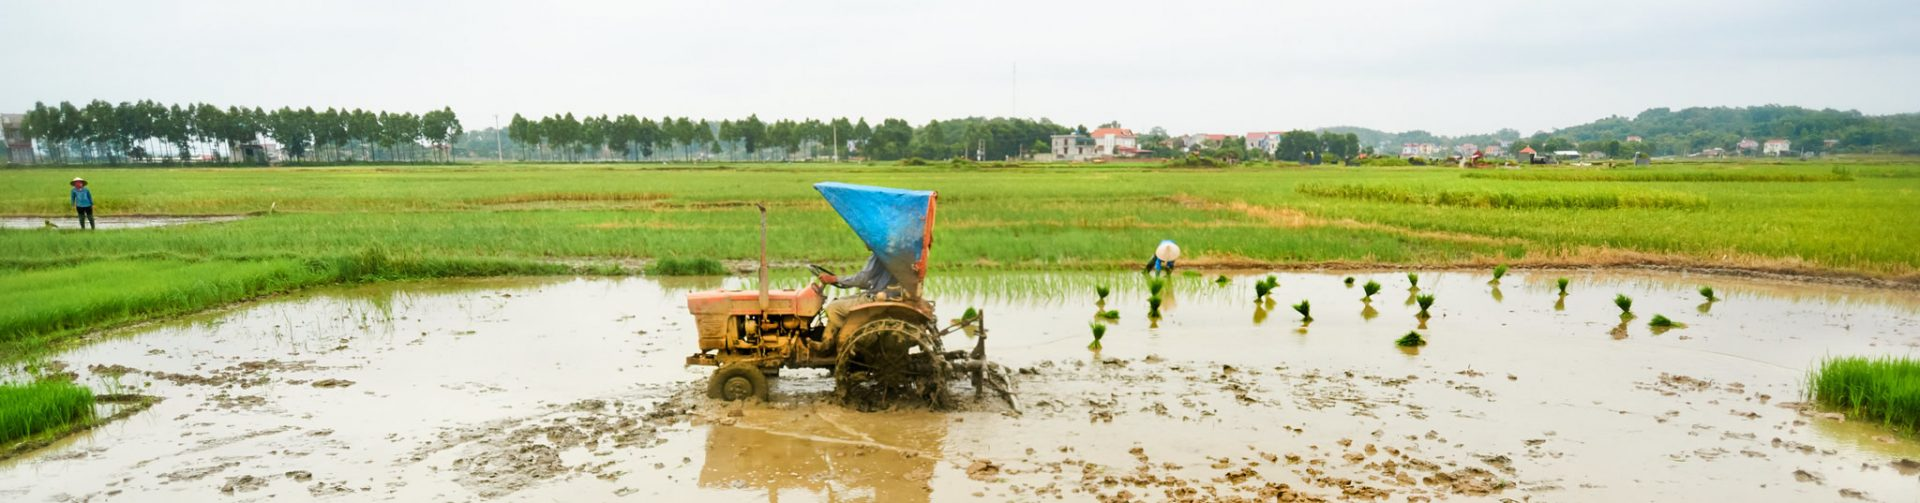 Evolution of agricultural mechanization in Vietnam